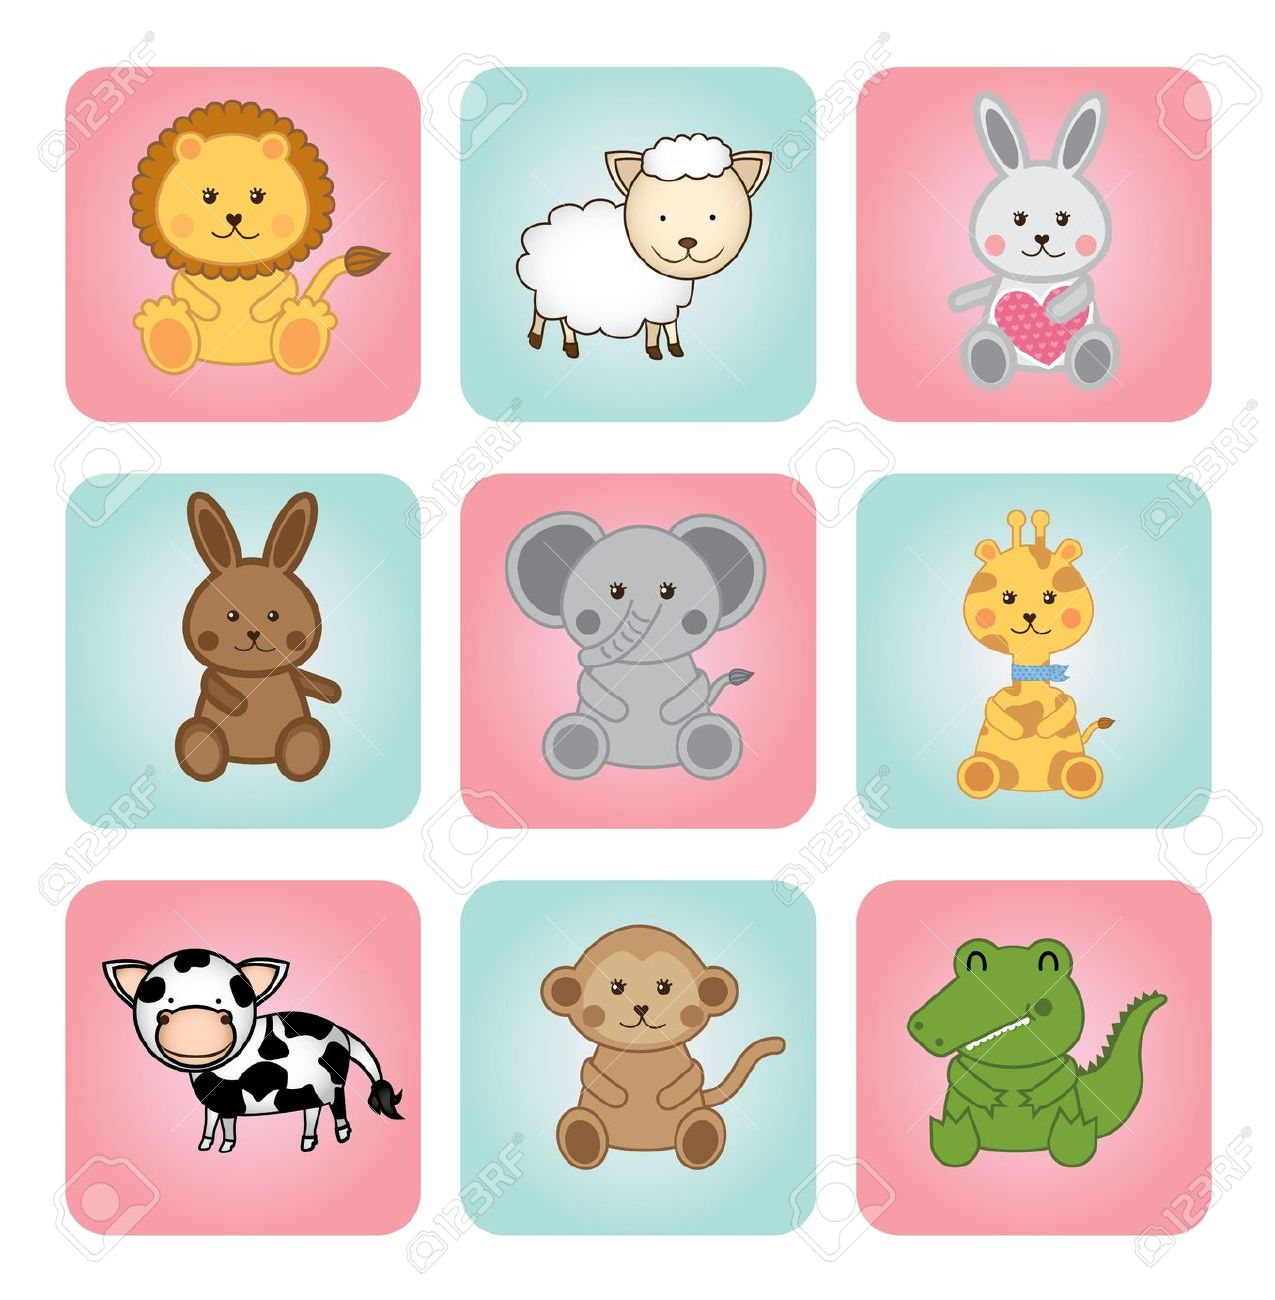 Animal Babies Over White Background Illustration Royalty Free.